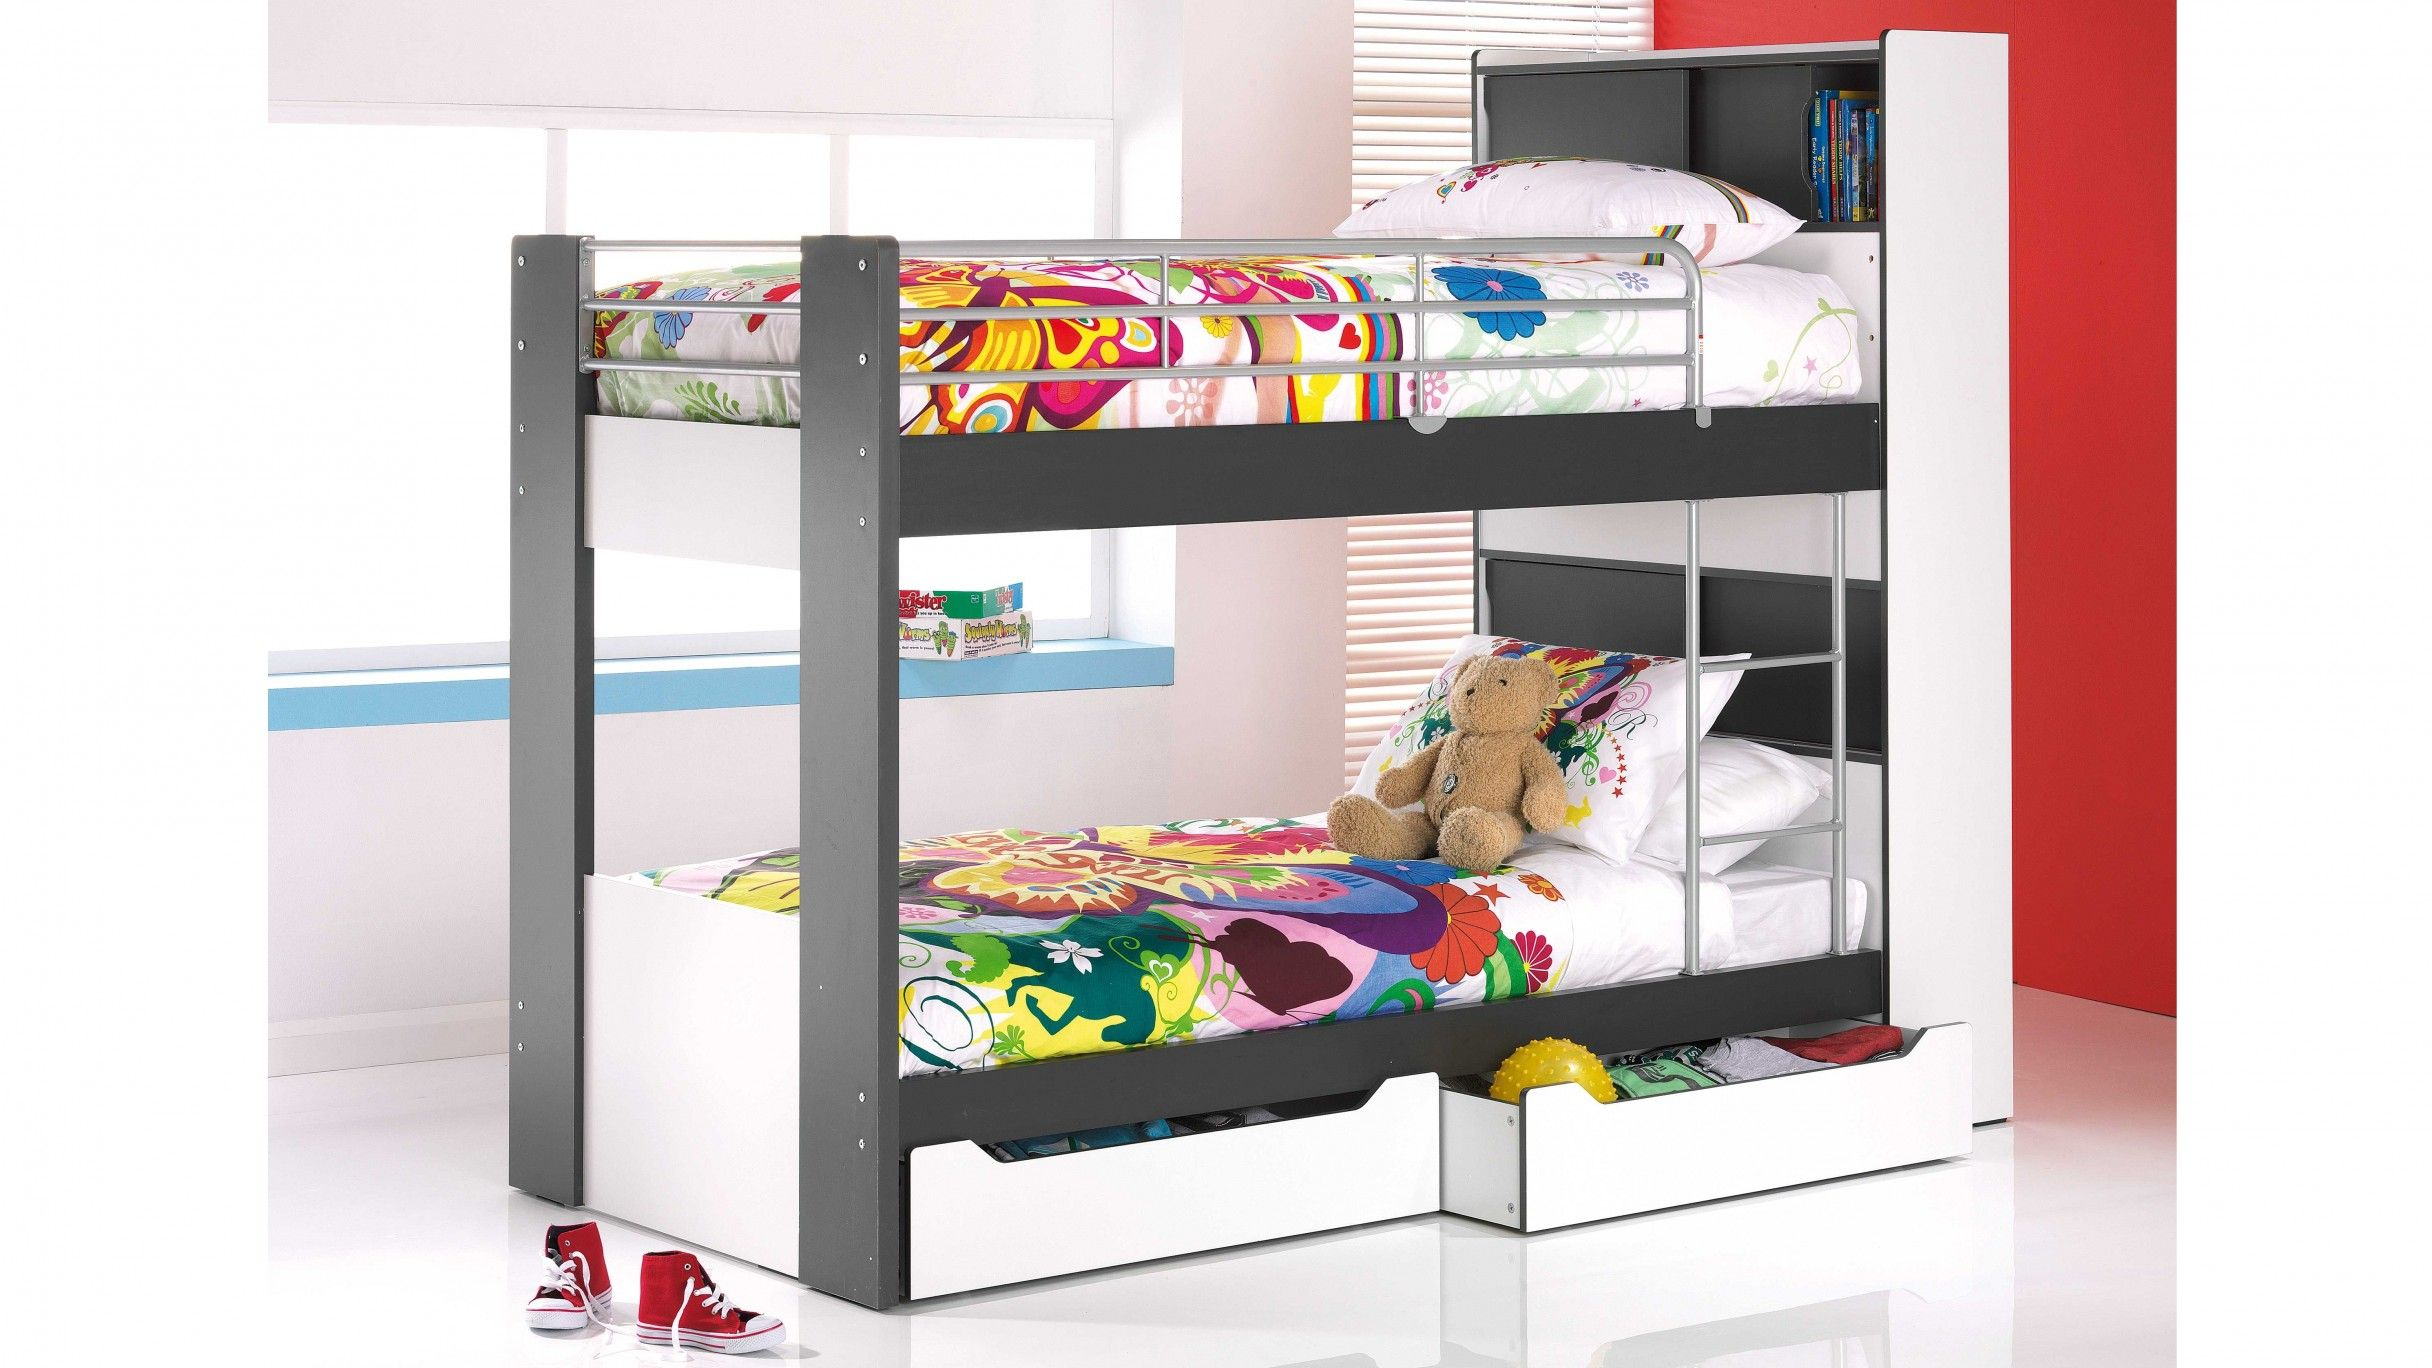 Kids Bedroom Harvey Norman montana single bunk bed with storage - harvey norman | boys room